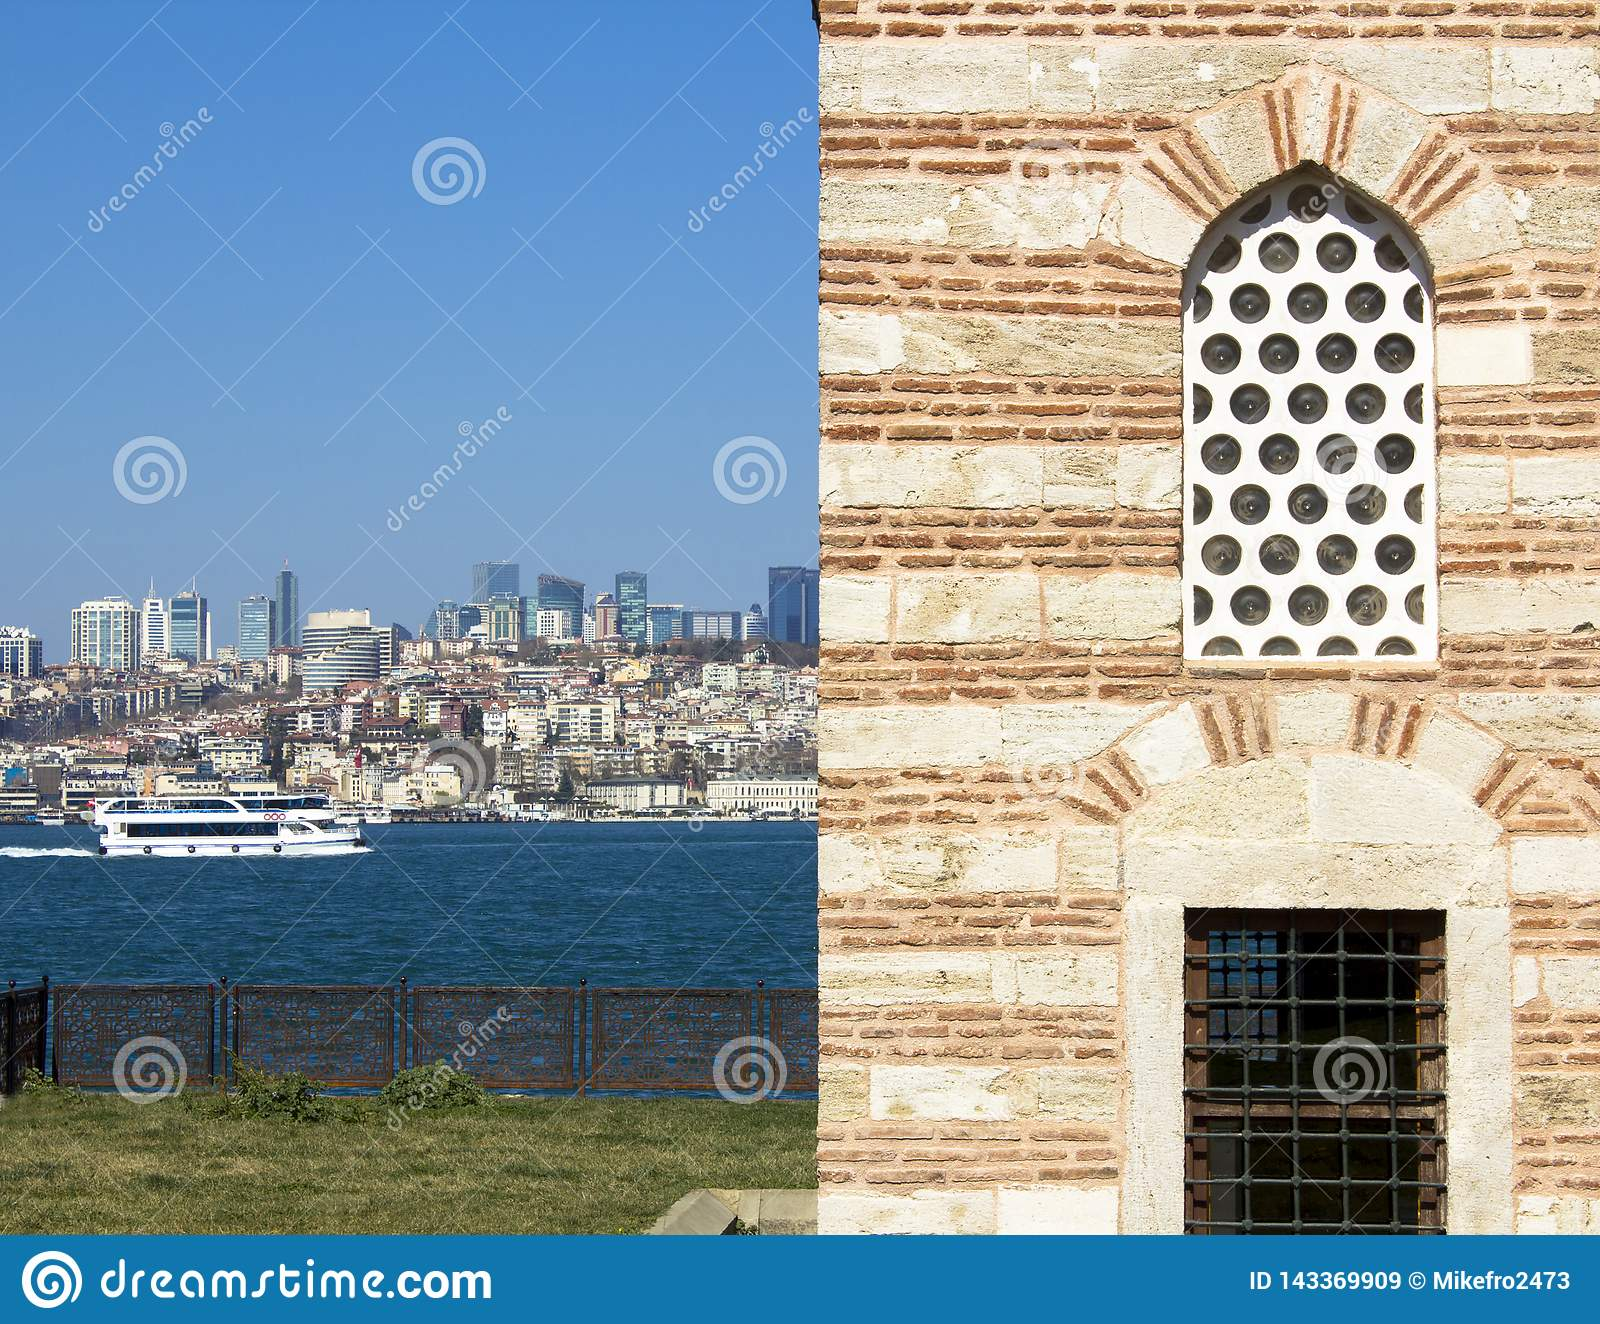 View of Bosphorus. Tourist ships and cargo barges sailing through it. View of Istanbul ancient buildings